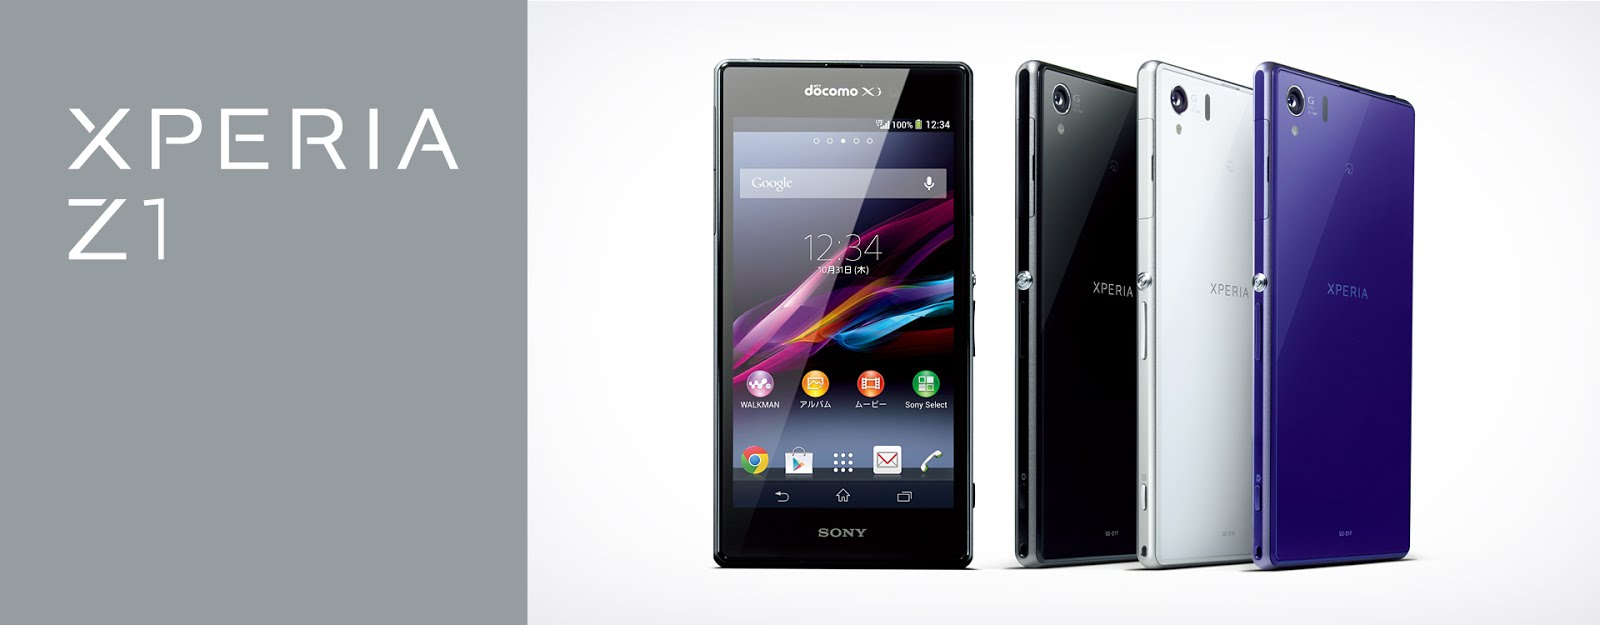 How to Change Xperia Z1 SO-01F Docomo's Internal to 32gb at Rom